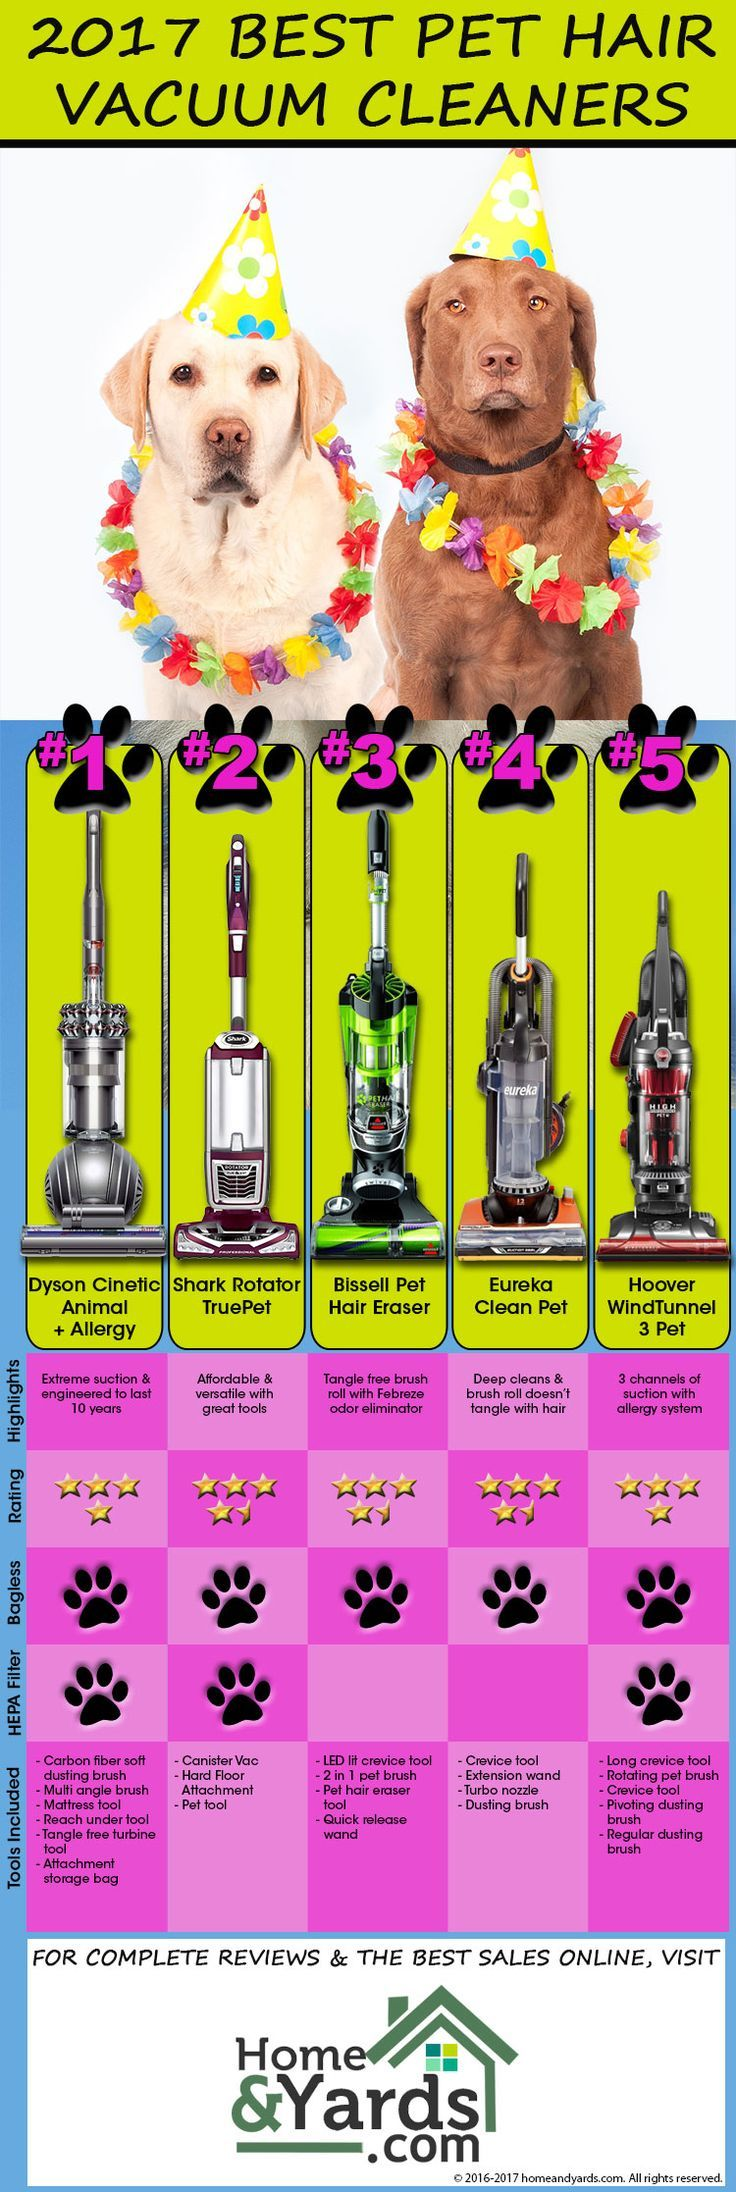 2017 best vacuum cleaners for pet hair infographic - Best Affordable Vacuum Cleaner